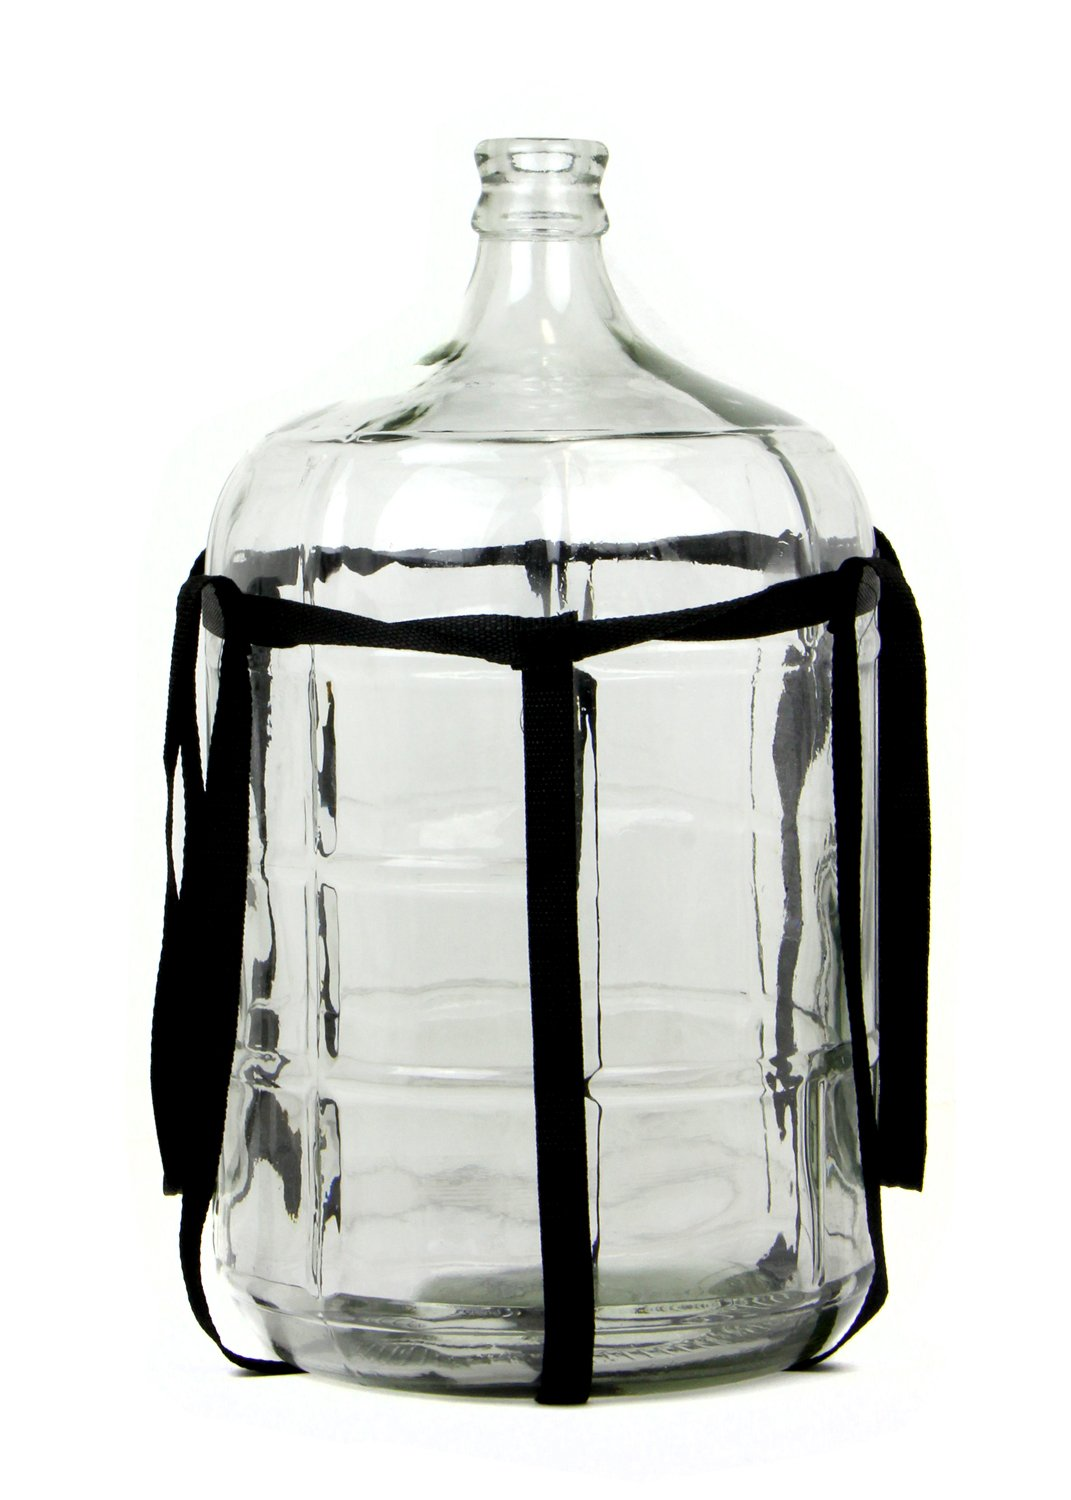 Kegco KC FP-CB-06 Glass Carboy, 6 gallon, Clear KC FP-CB-06